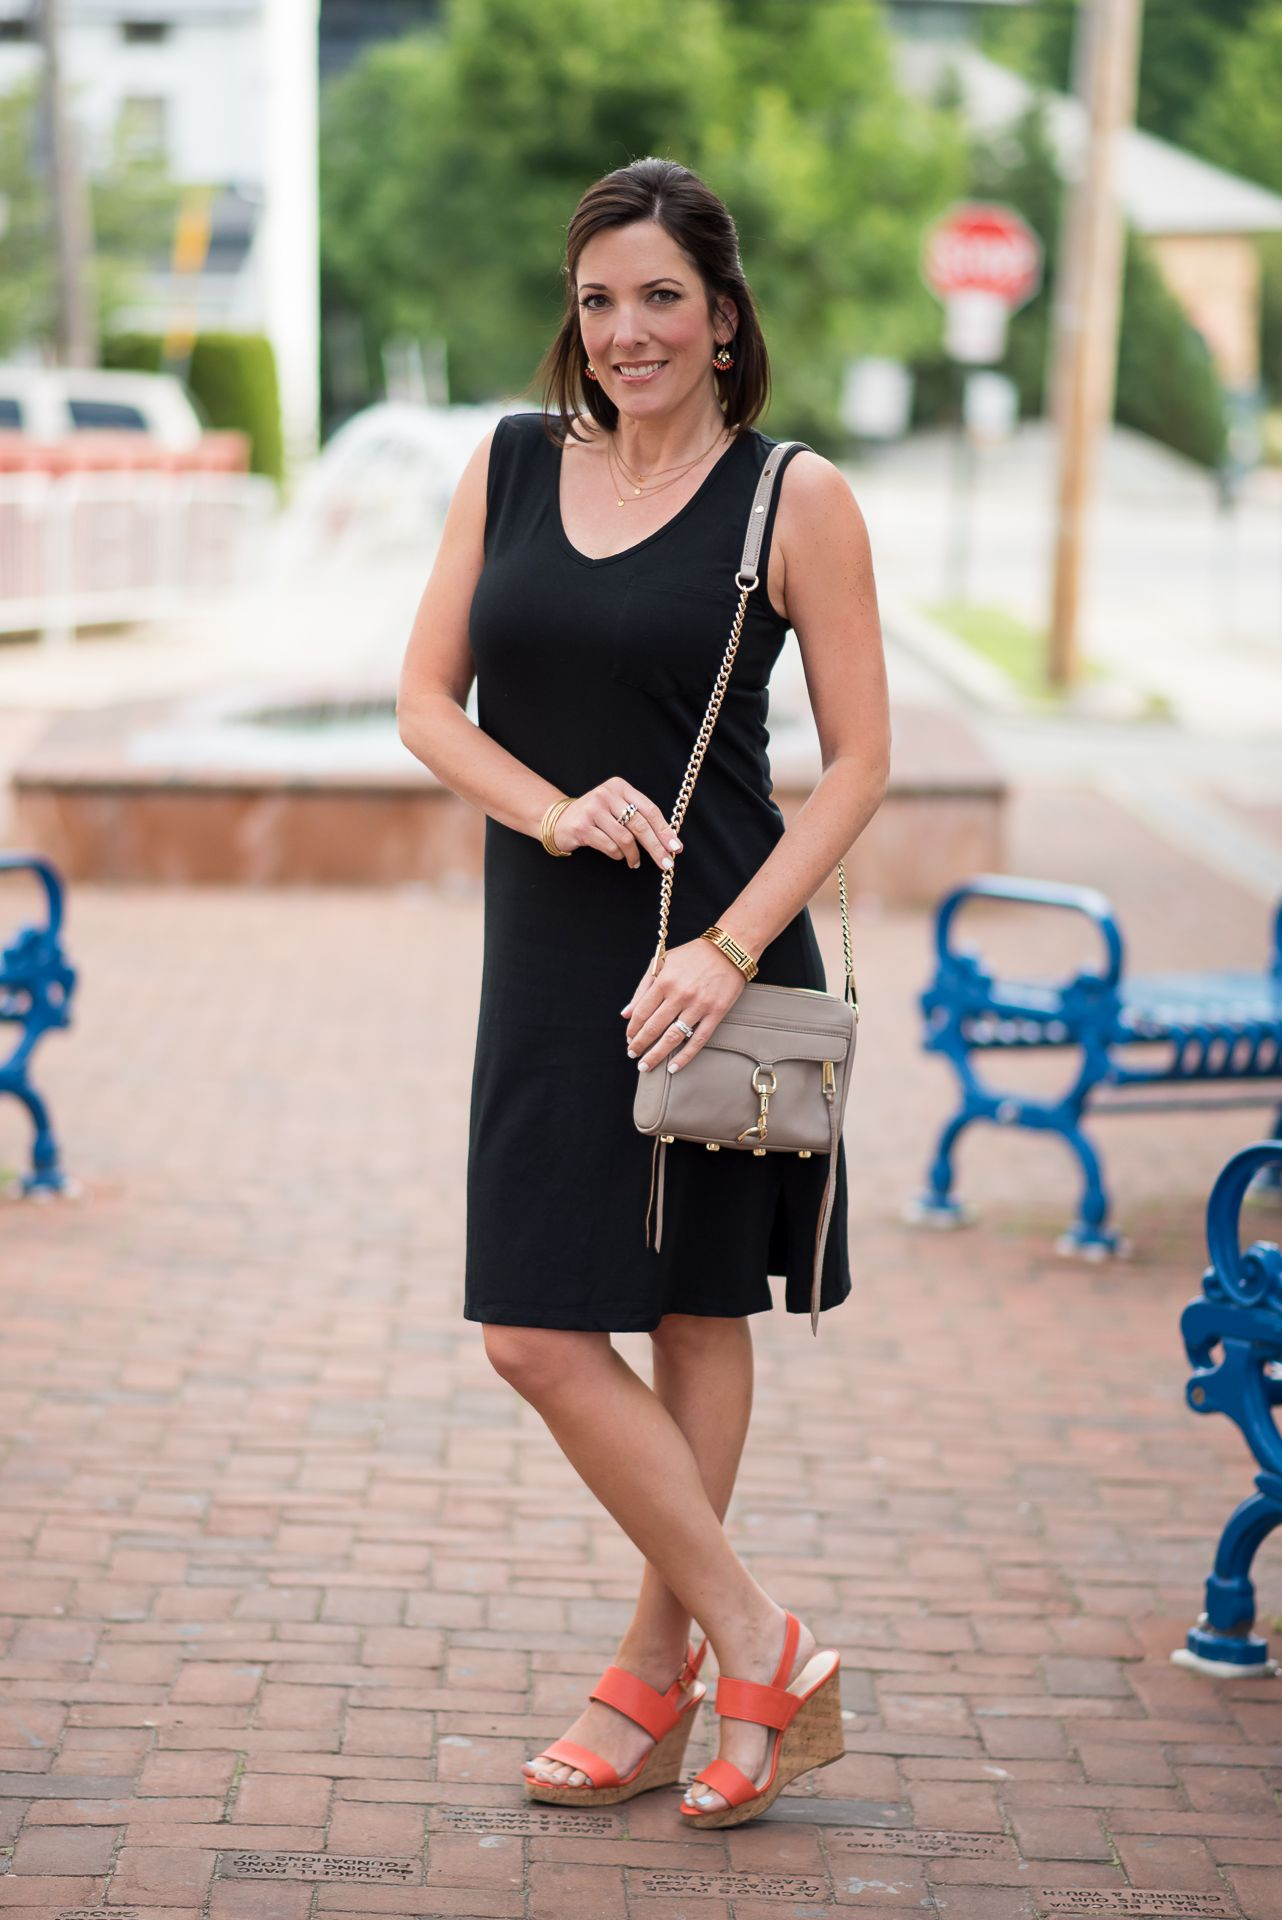 Casual Black Dress With Converse Or Wedge Sandals Black Dresses Casual Dress With Converse Black Dress Outfit Casual [ 1920 x 1282 Pixel ]